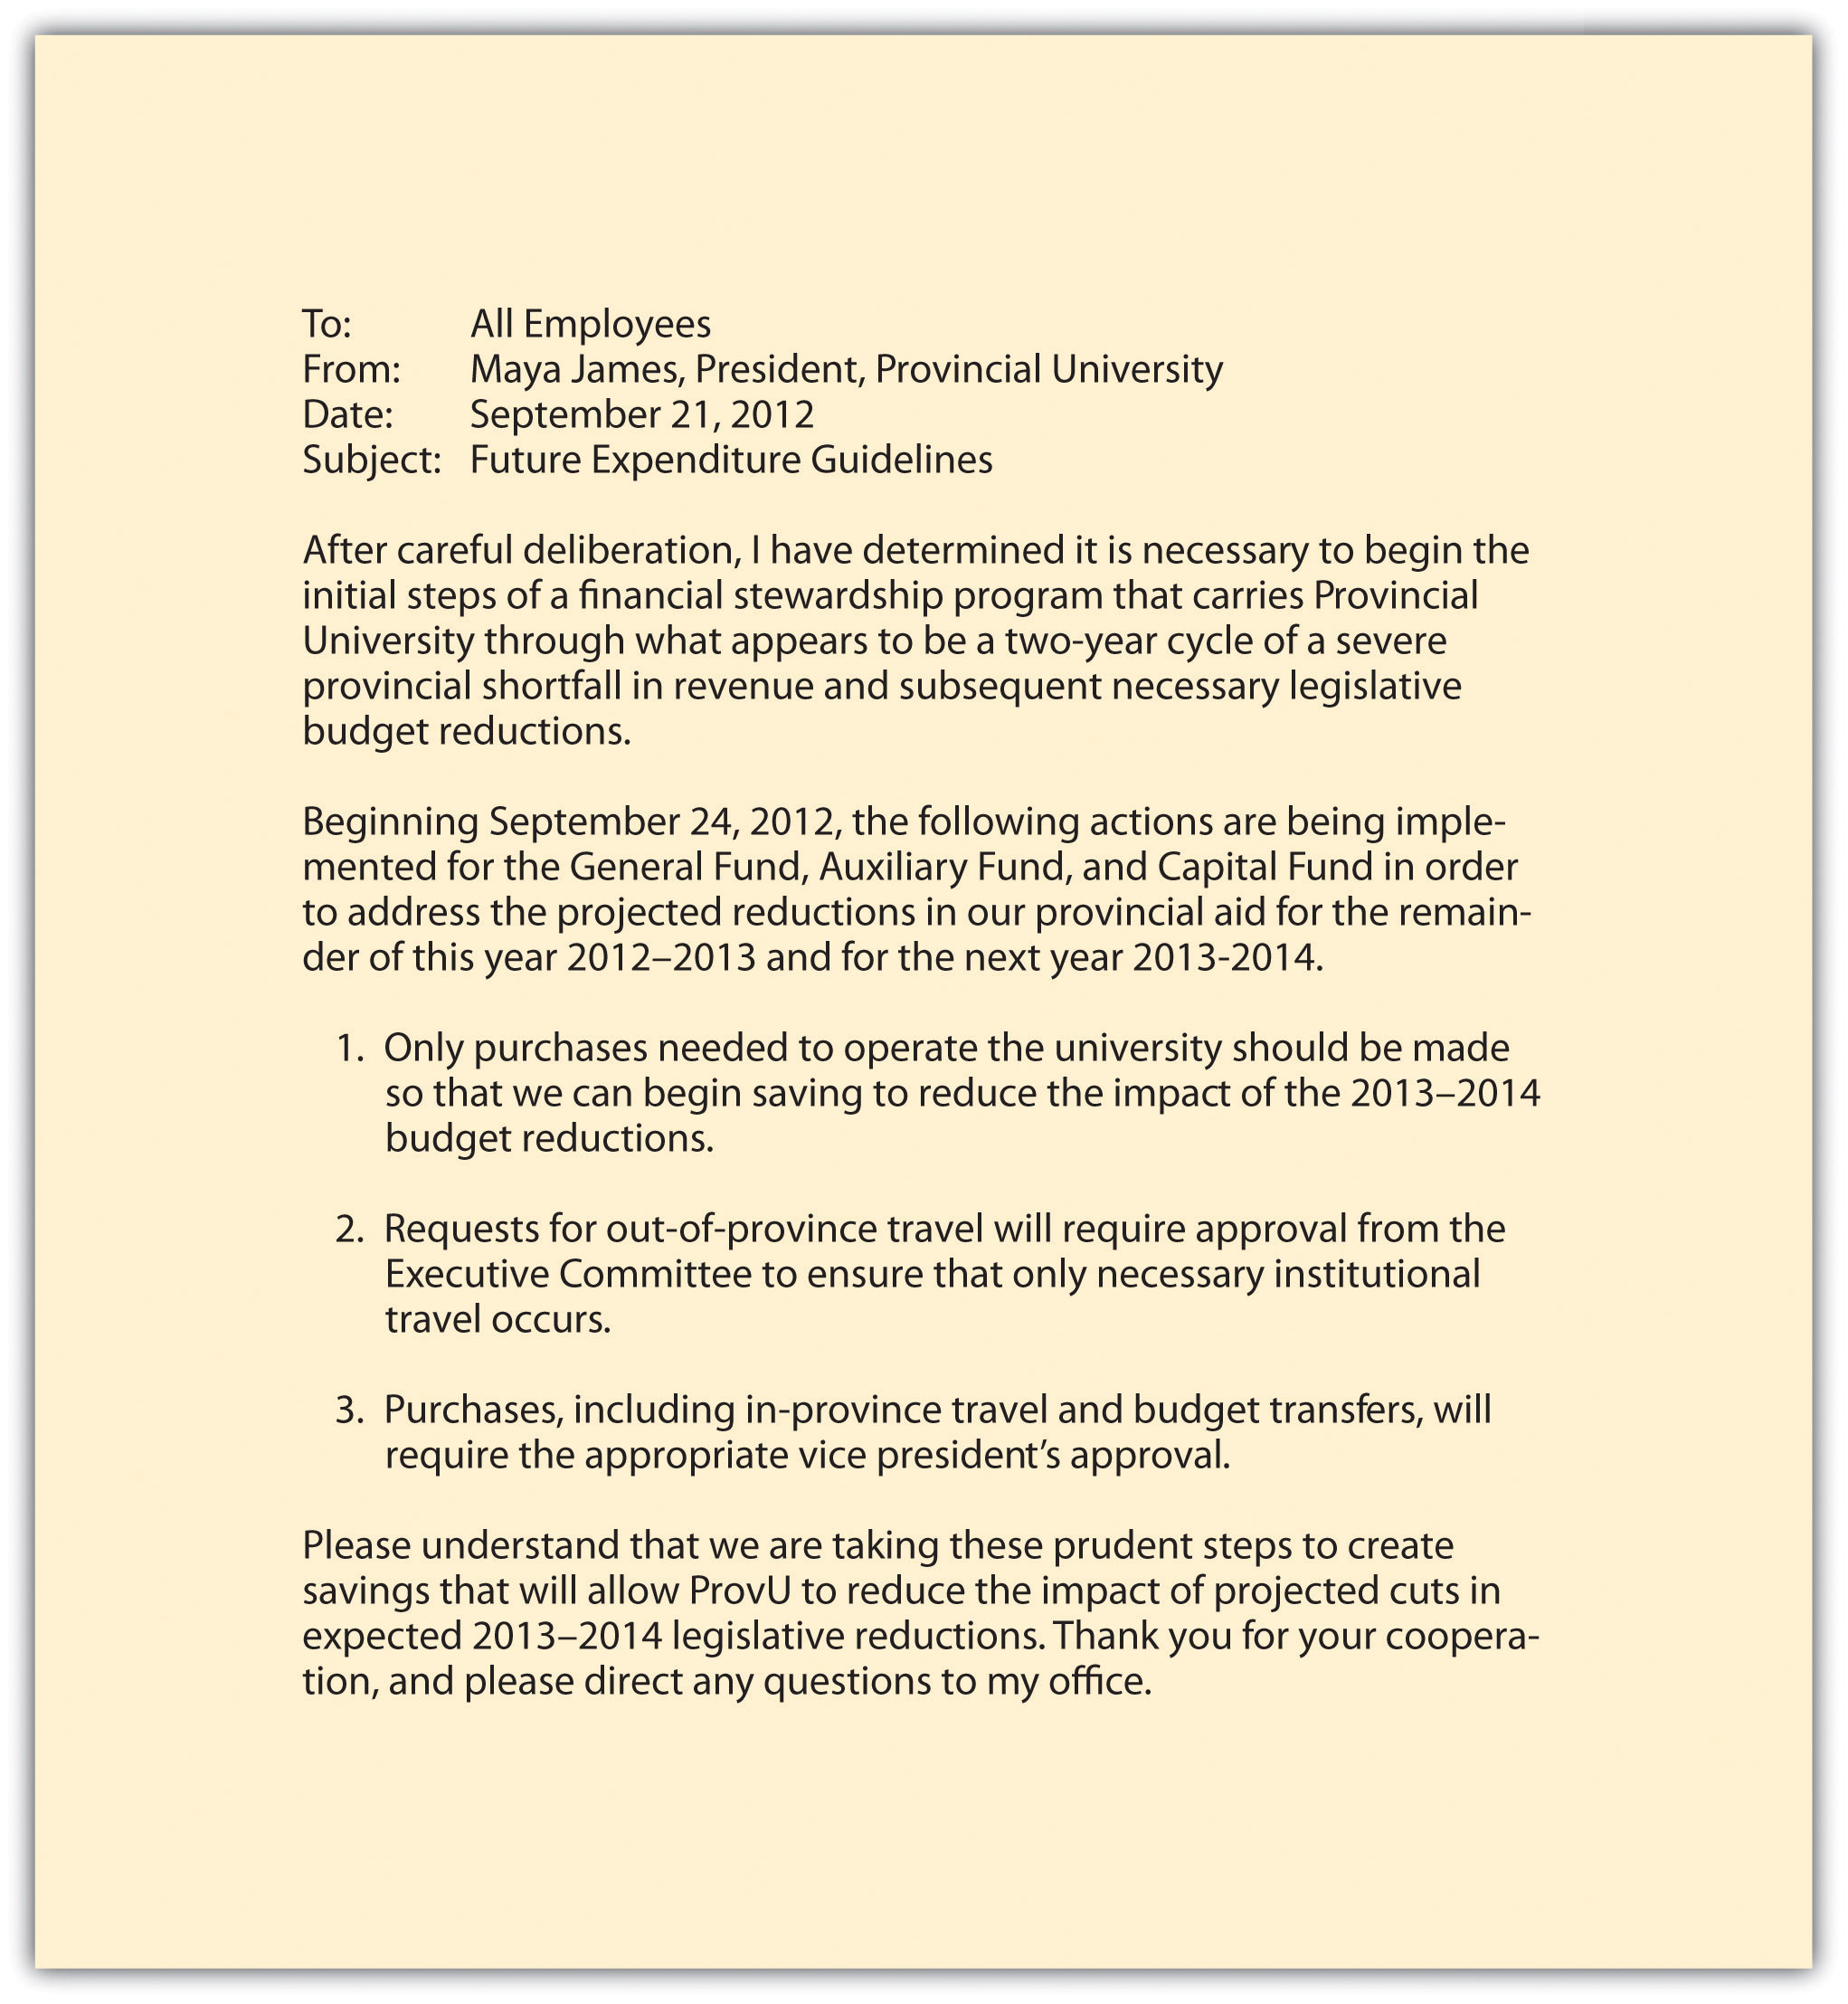 sample memos 8 examples of memos interoffice memo report – Interoffice Memo Sample Format